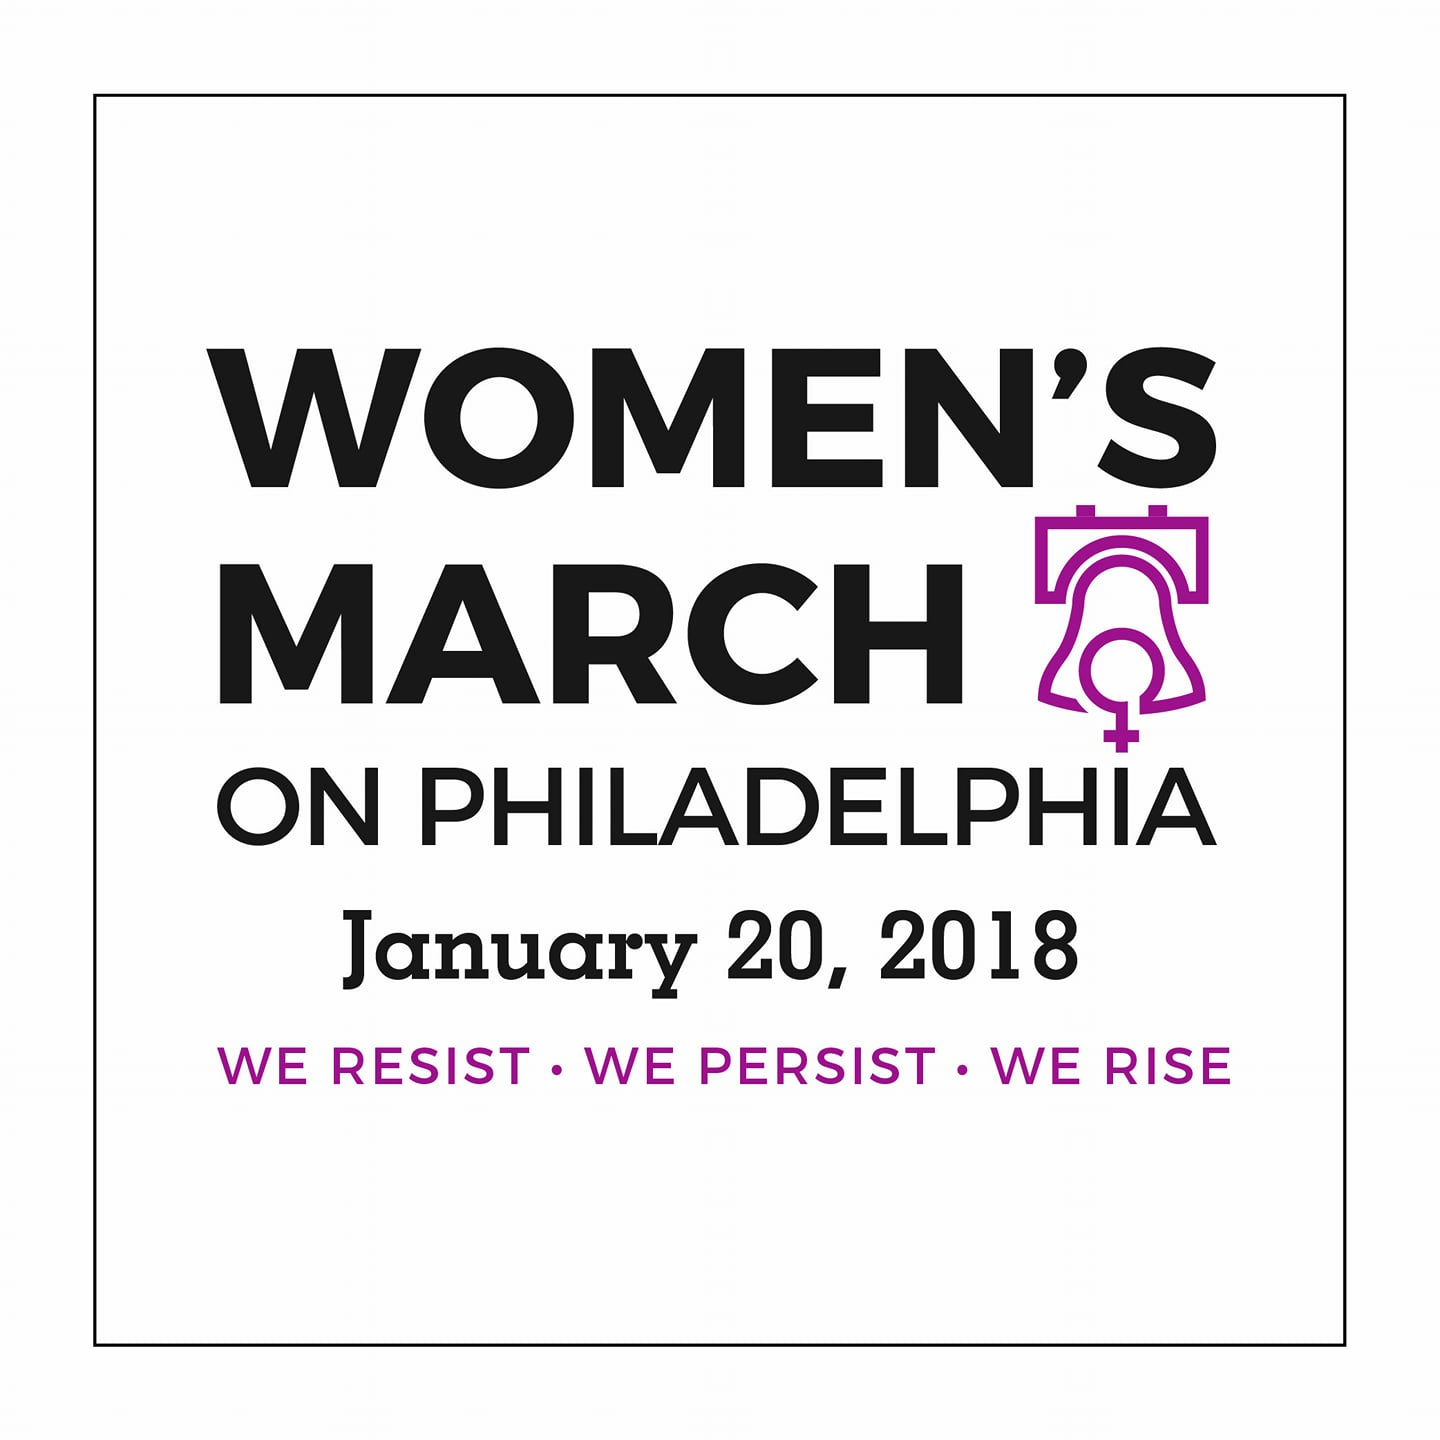 Women's March on Philadelphia 2018